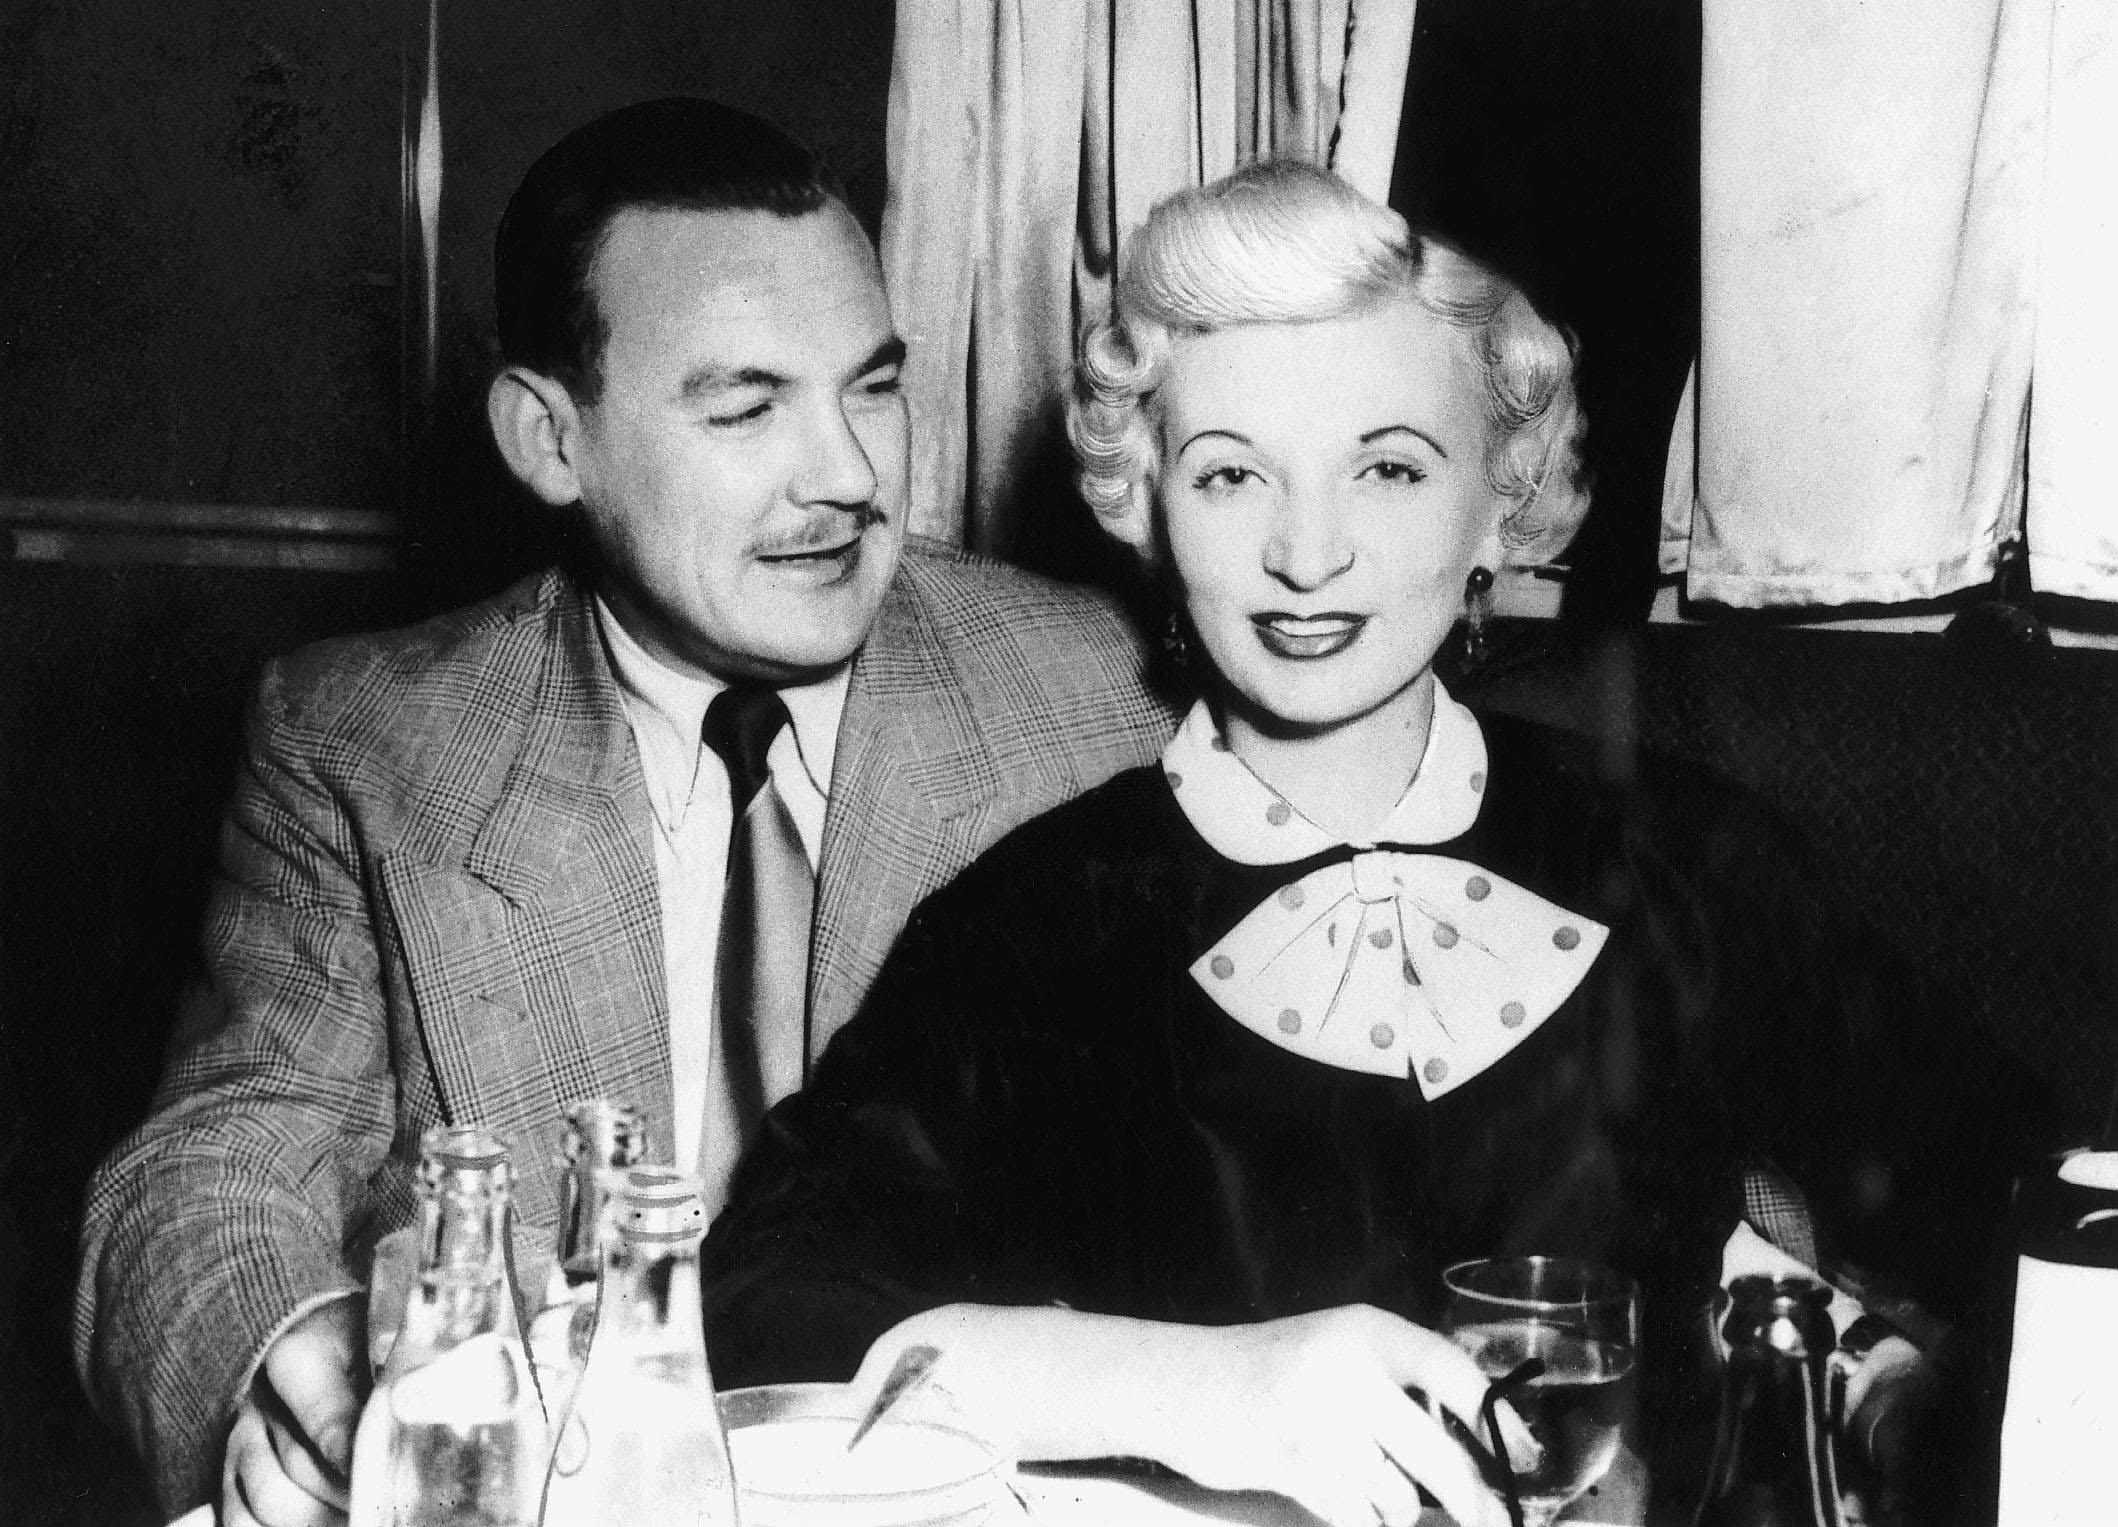 Ruth Ellis and her friend Desmond Cussen, who supplied the gun with which she shot David Blakely. (Photo by Trinity Mirror/Mirrorpix/Alamy Stock Photo)